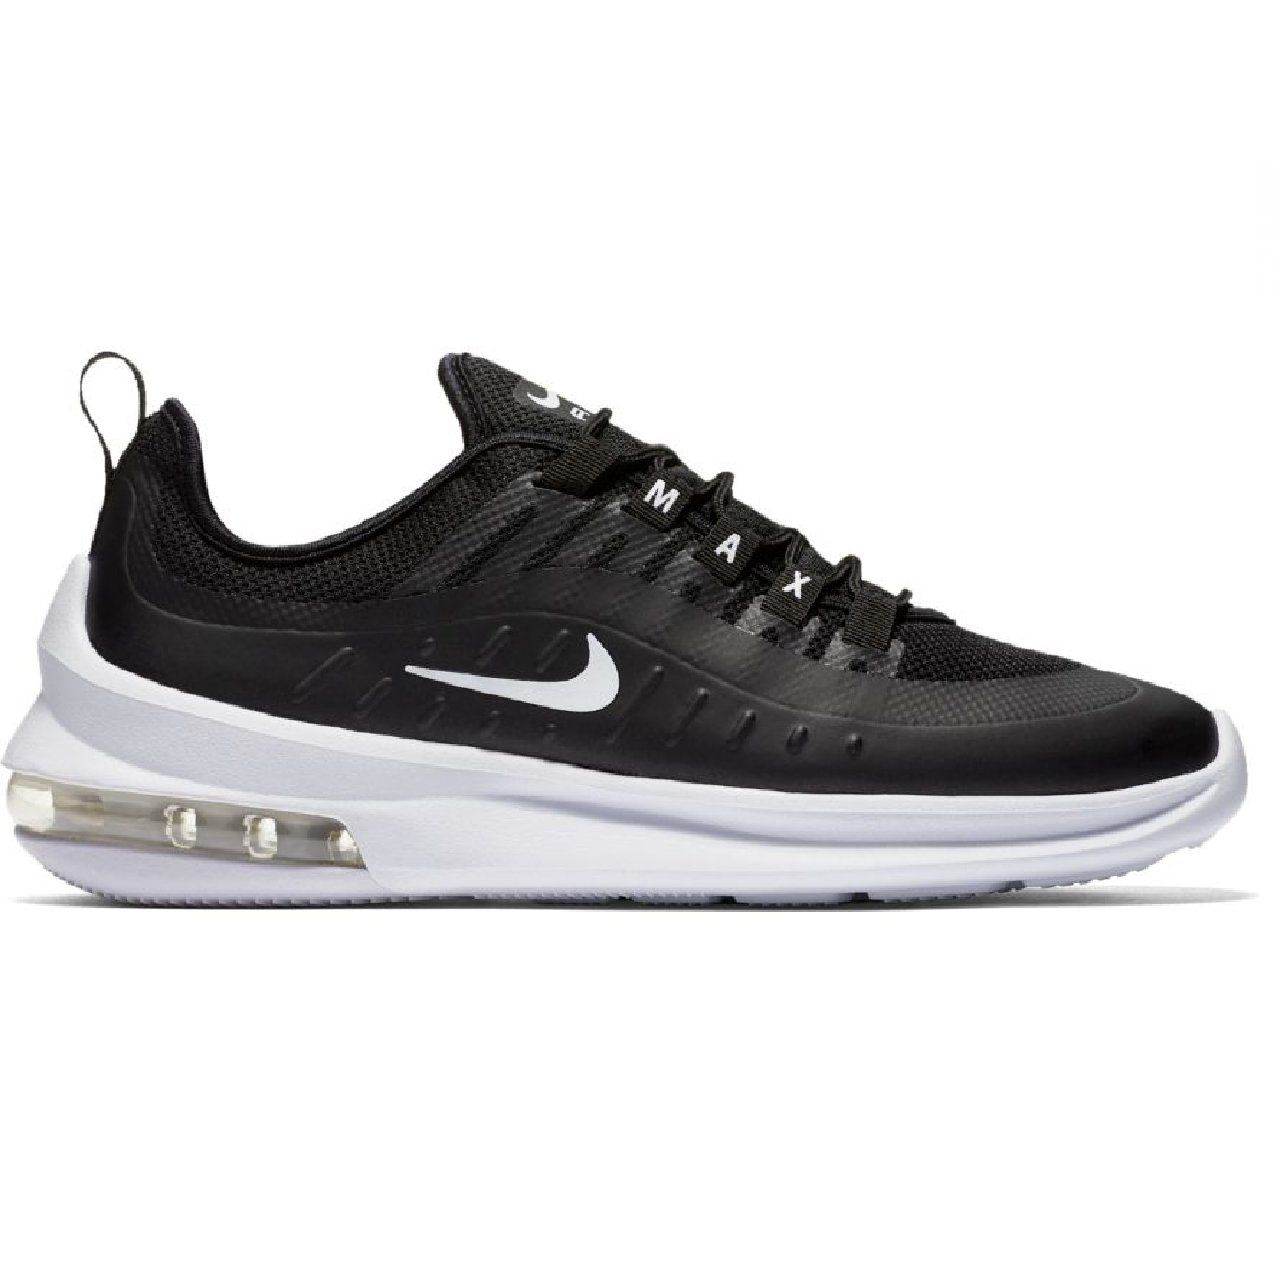 Спортивная обувь NIKE Nike Air Max Axis black/white